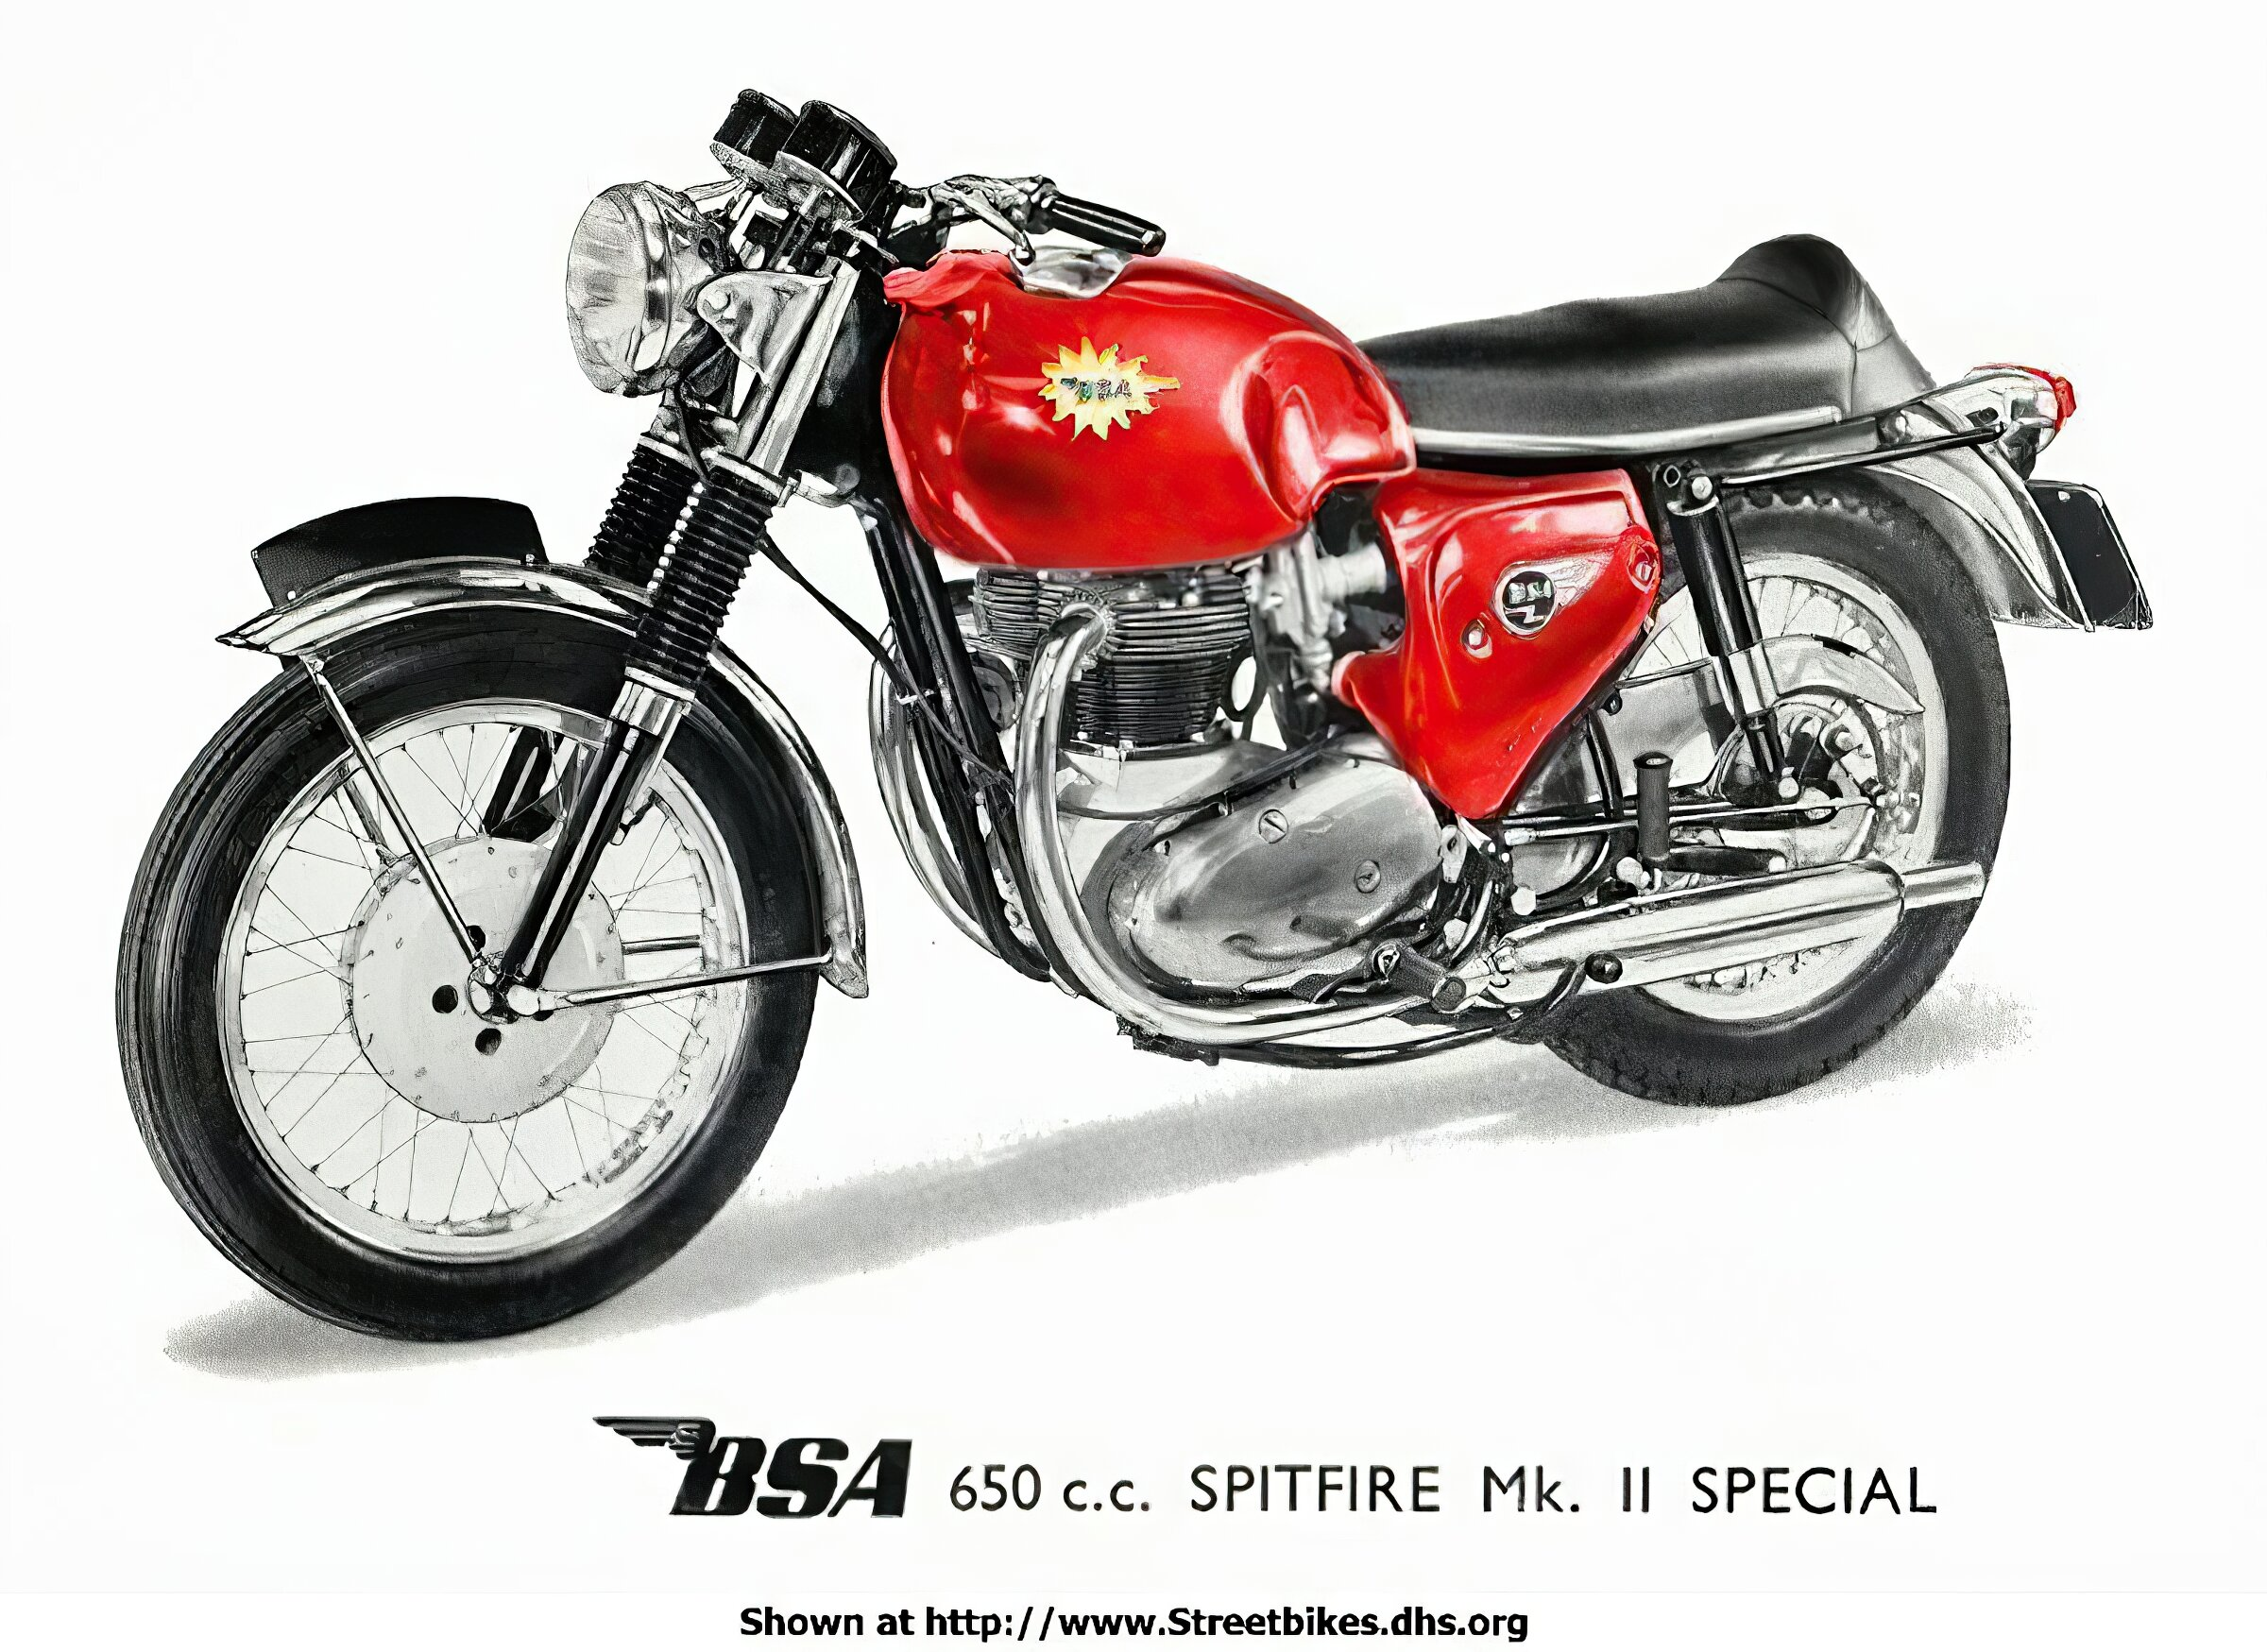 BSA 650 Series - ID: 731